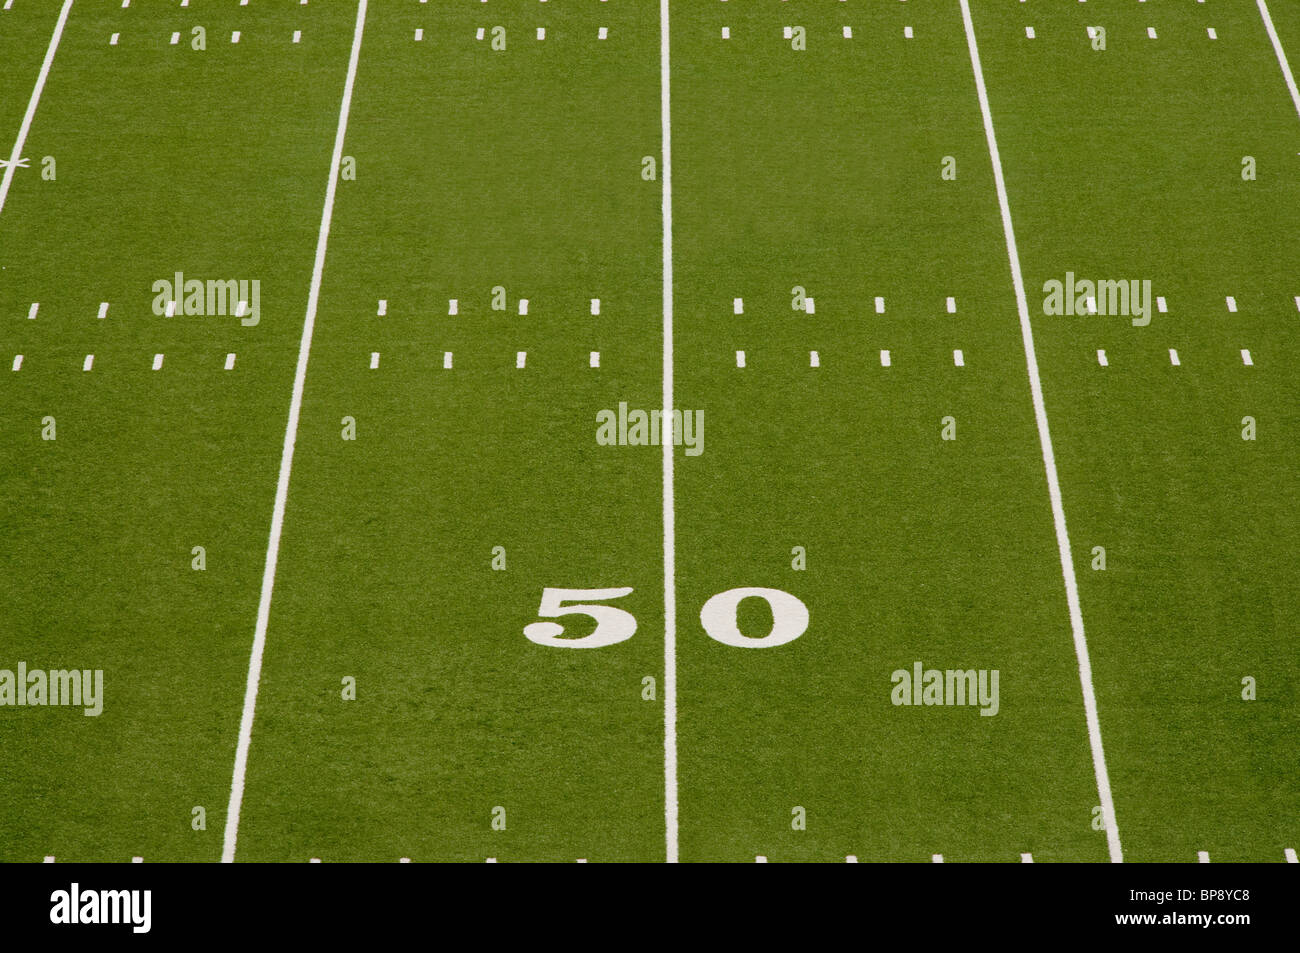 Primo piano di 50 yard linea sul football americano in campo. Immagini Stock